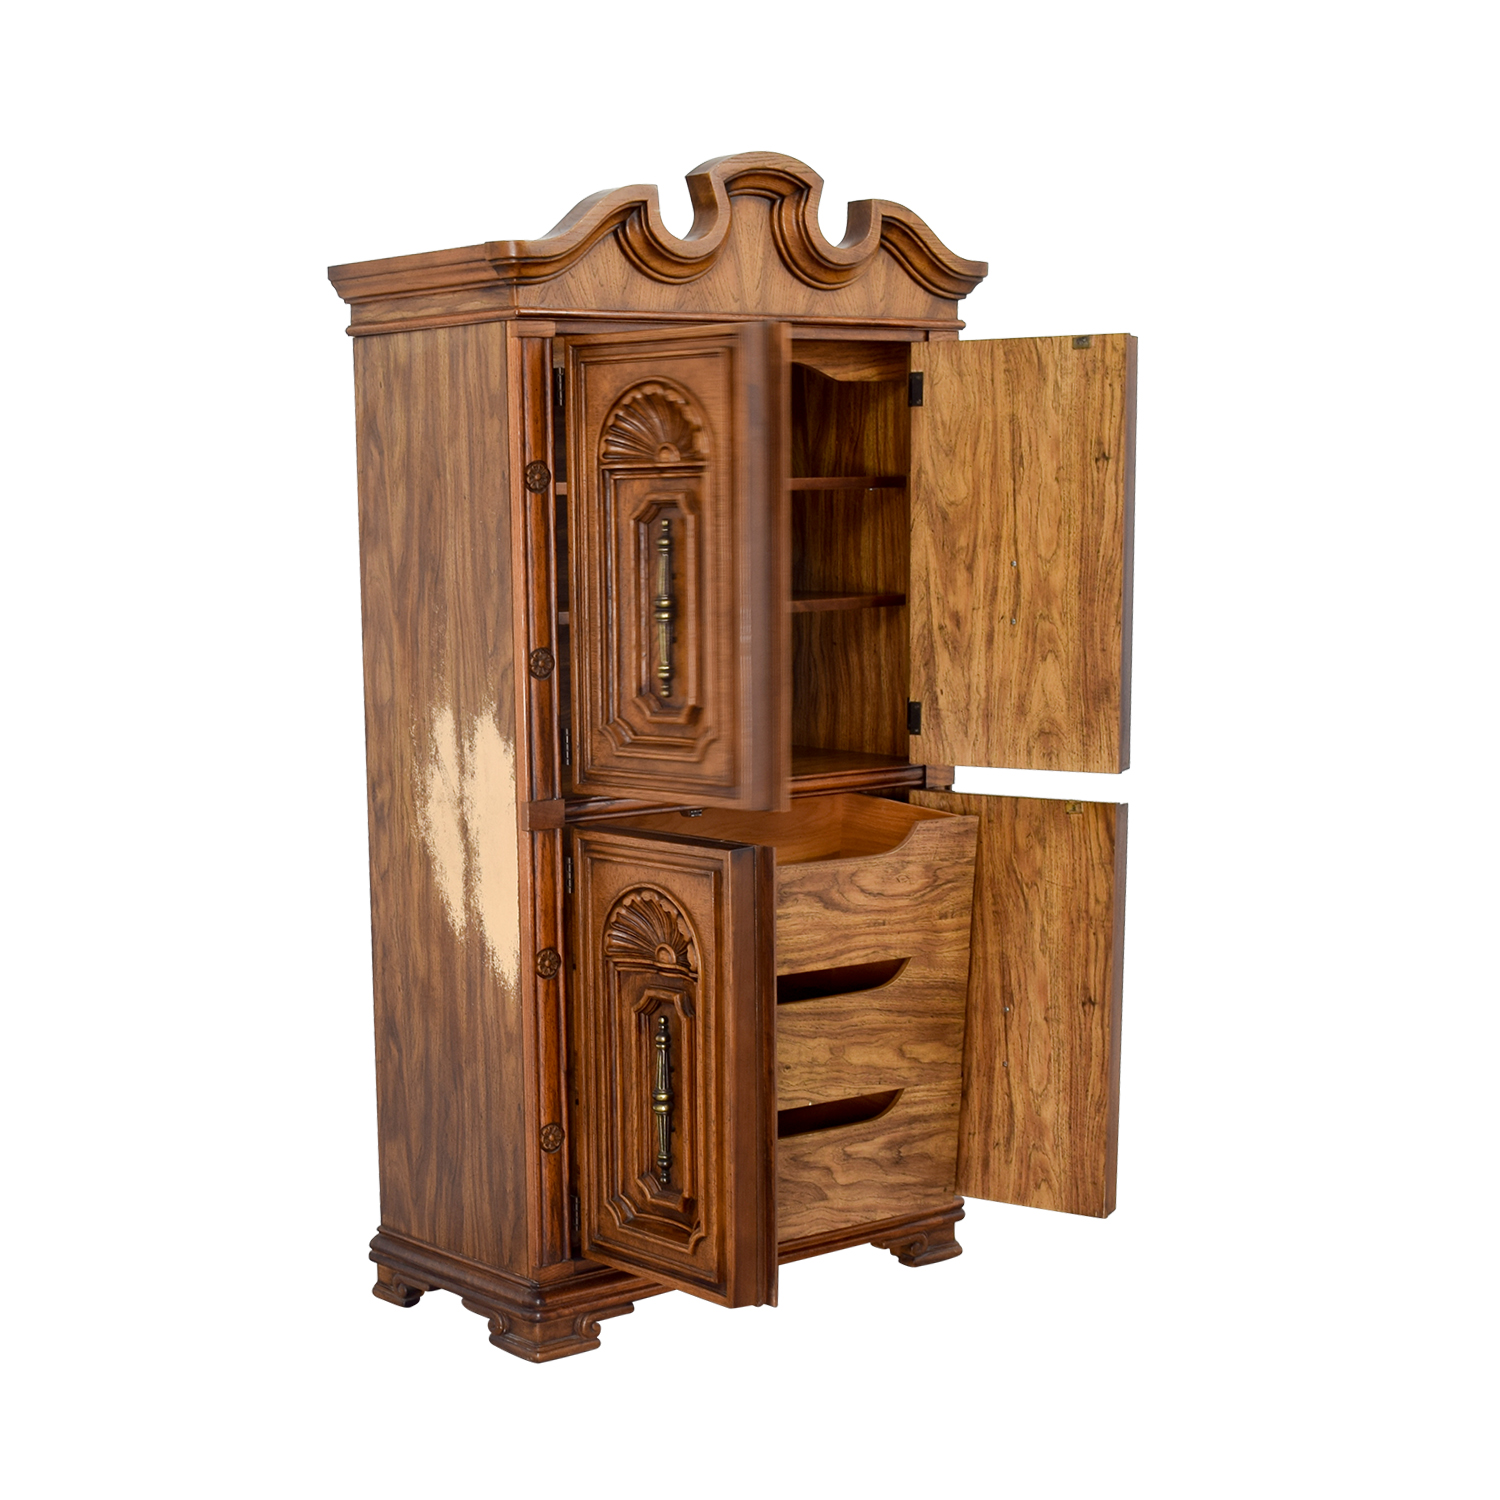 Seaman's Seaman's Carved Wood Armoire nj